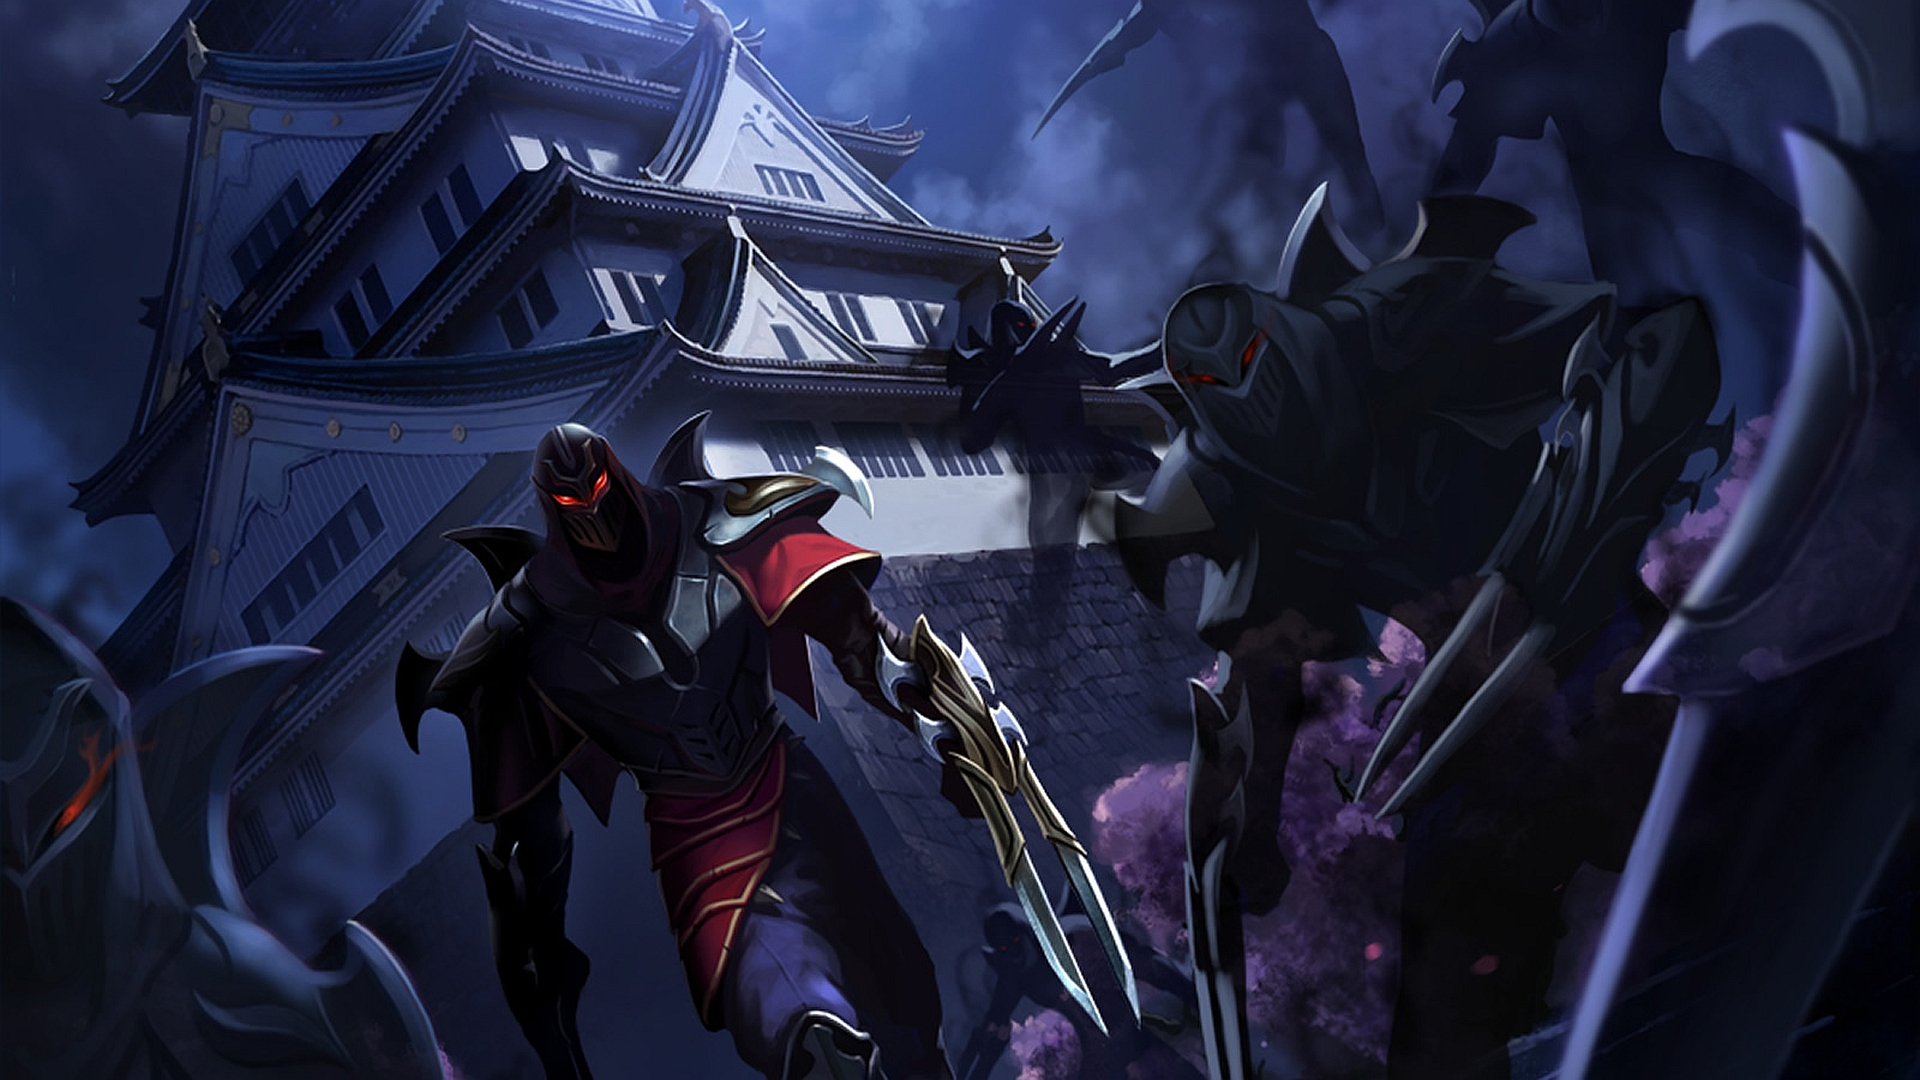 zed the master of shadows artwork league of legends